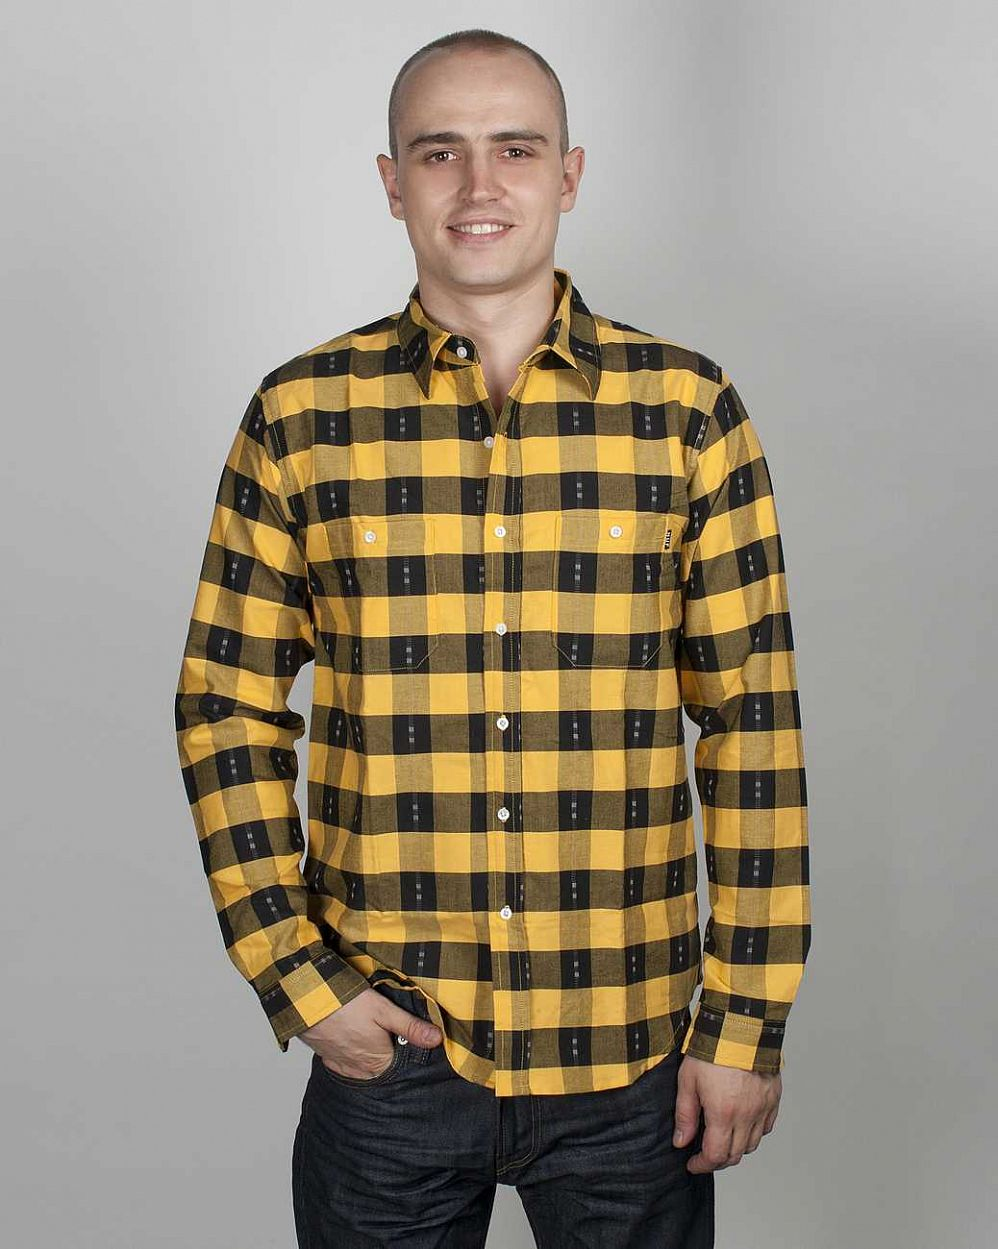 купить Рубашка HUF Chekerboard Yellow/black в Москве